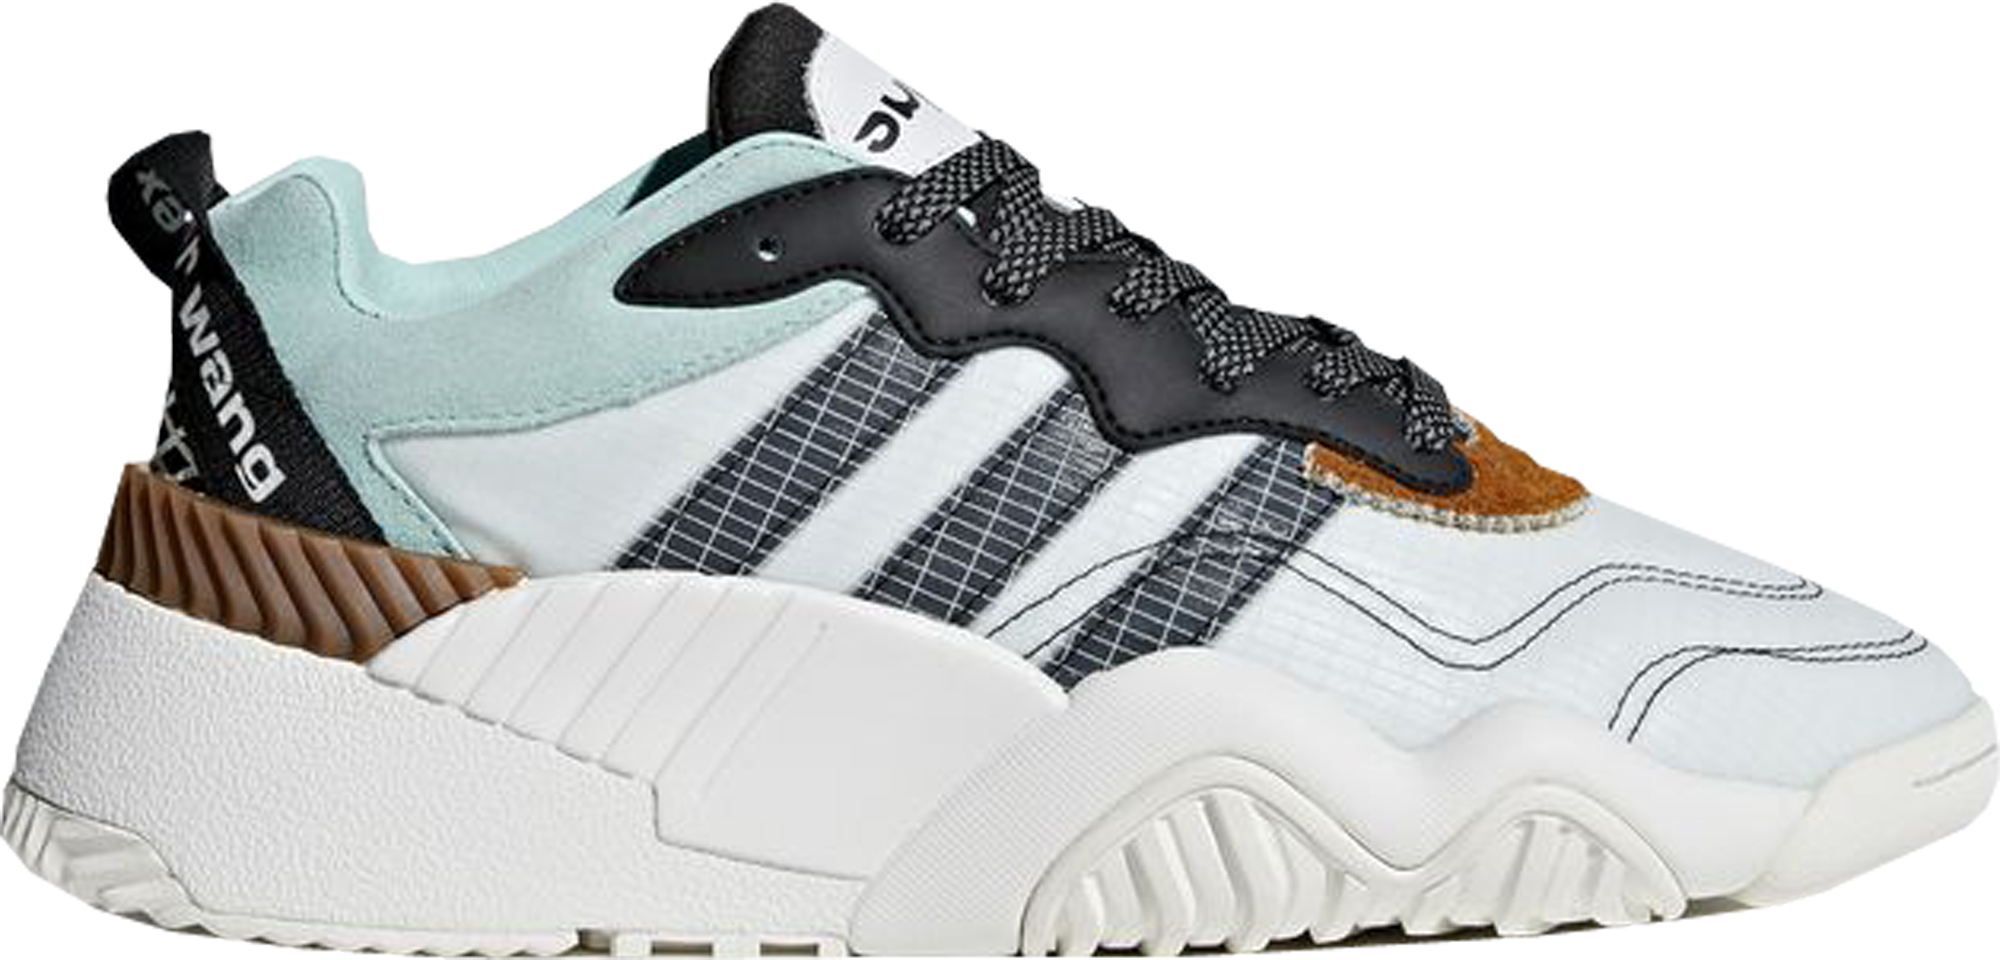 adidas AW Turnout Trainer Alexander Wang Clear Mint Core Black